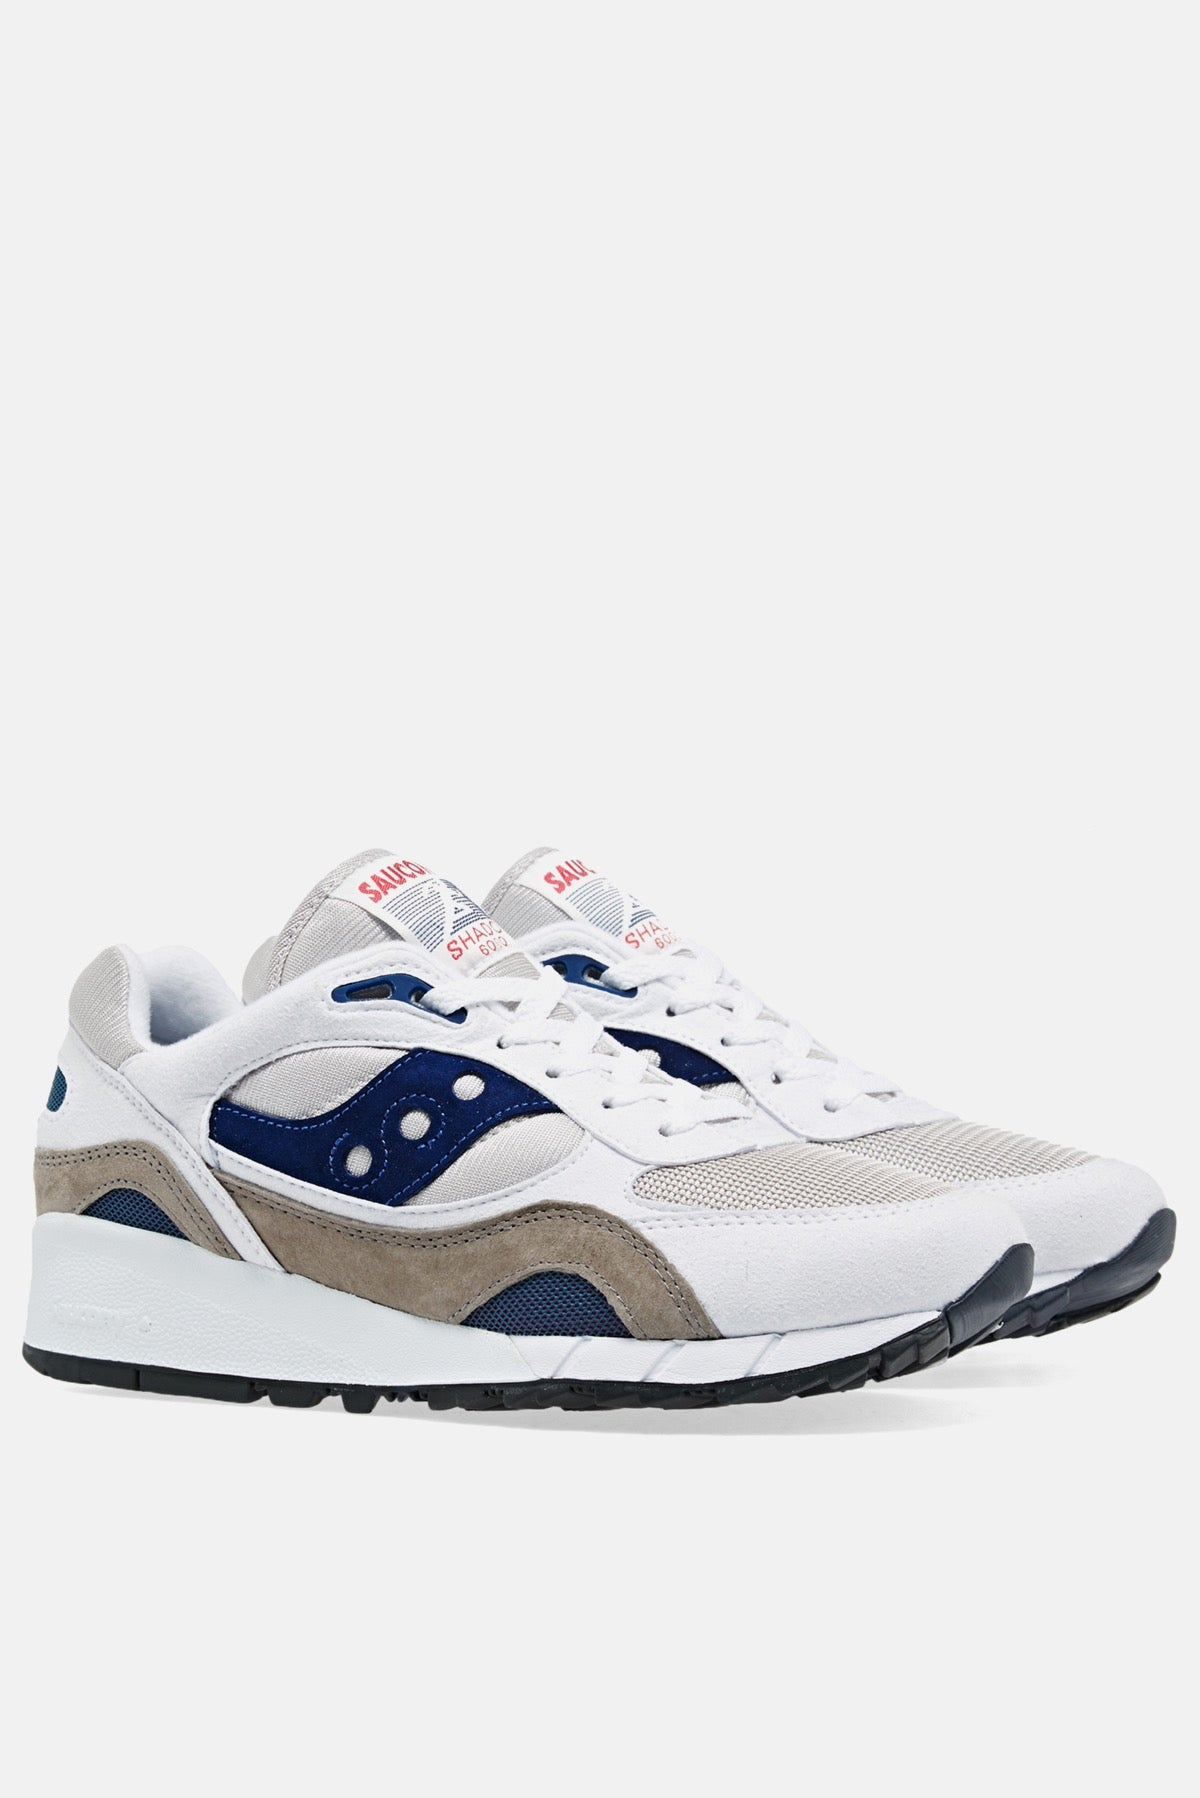 Saucony Shadow 6000 in White